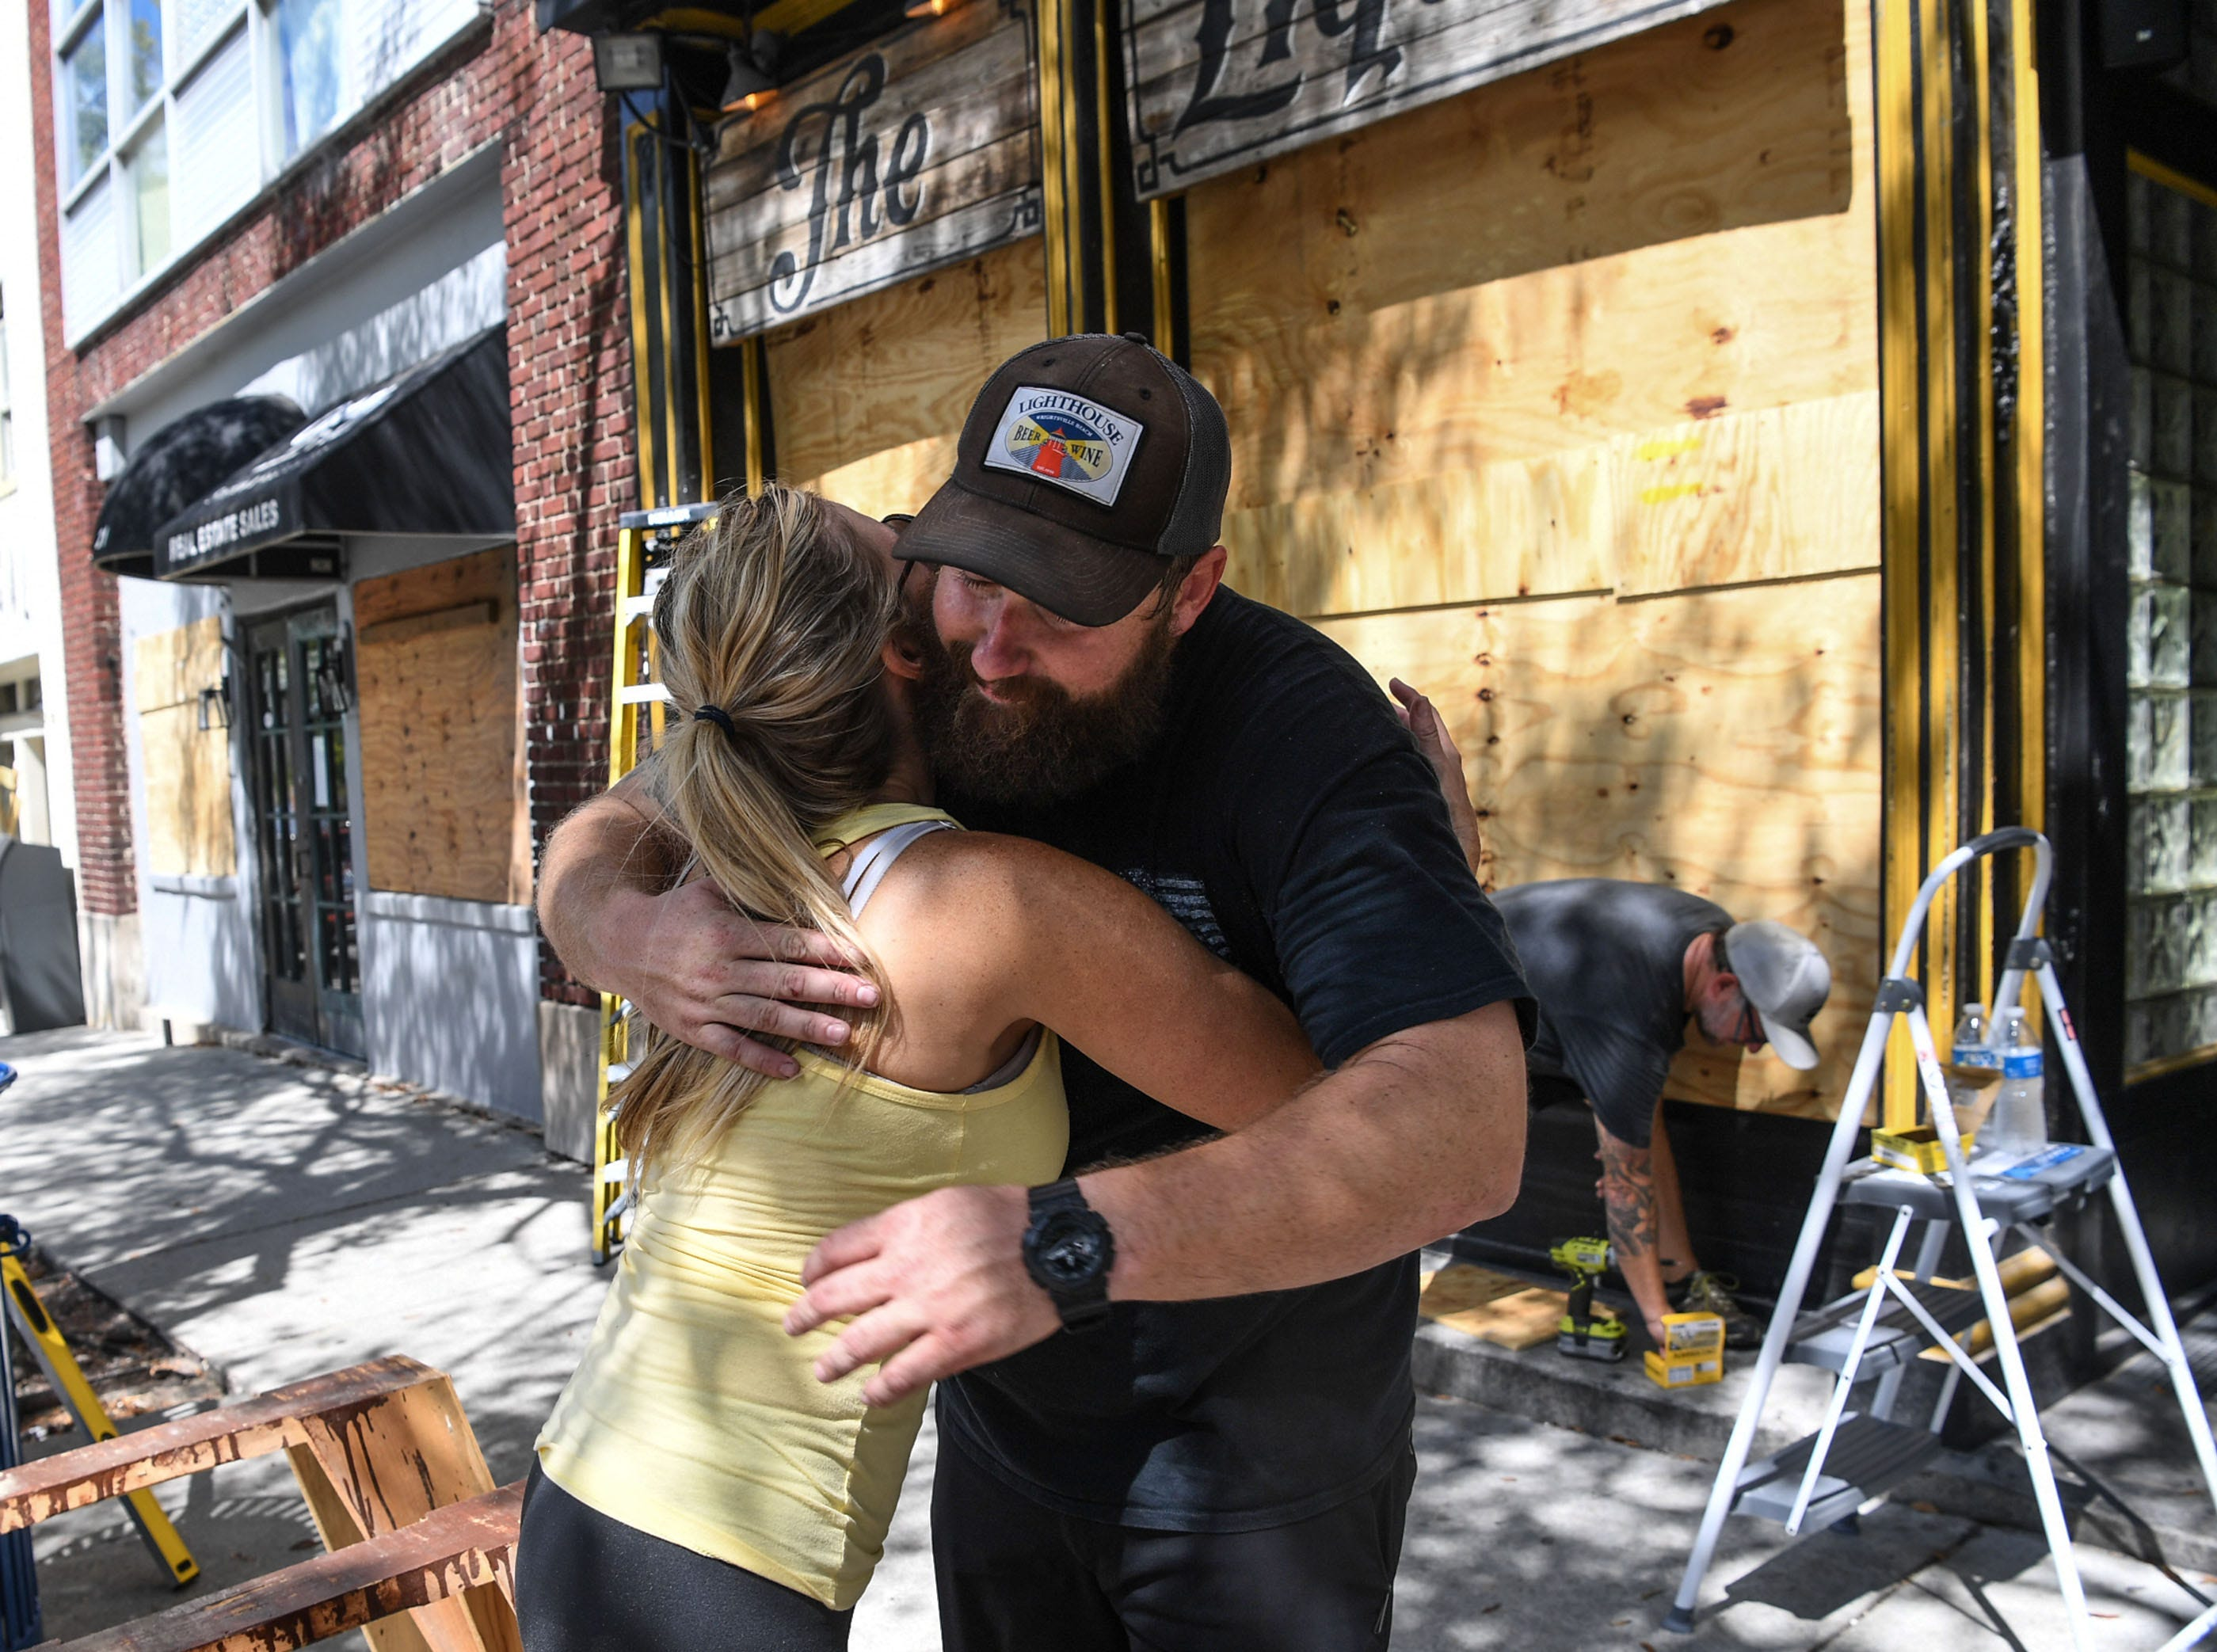 Jennifer Wilson gives a hug to Andy Correll at The Liquid Room, a bar near the riverfront in Wilmington, North Carolina on Wednesday, September 12, 2018.  (Ken Ruinard / Greenville News / Gannett USA Today Network / 2018 )